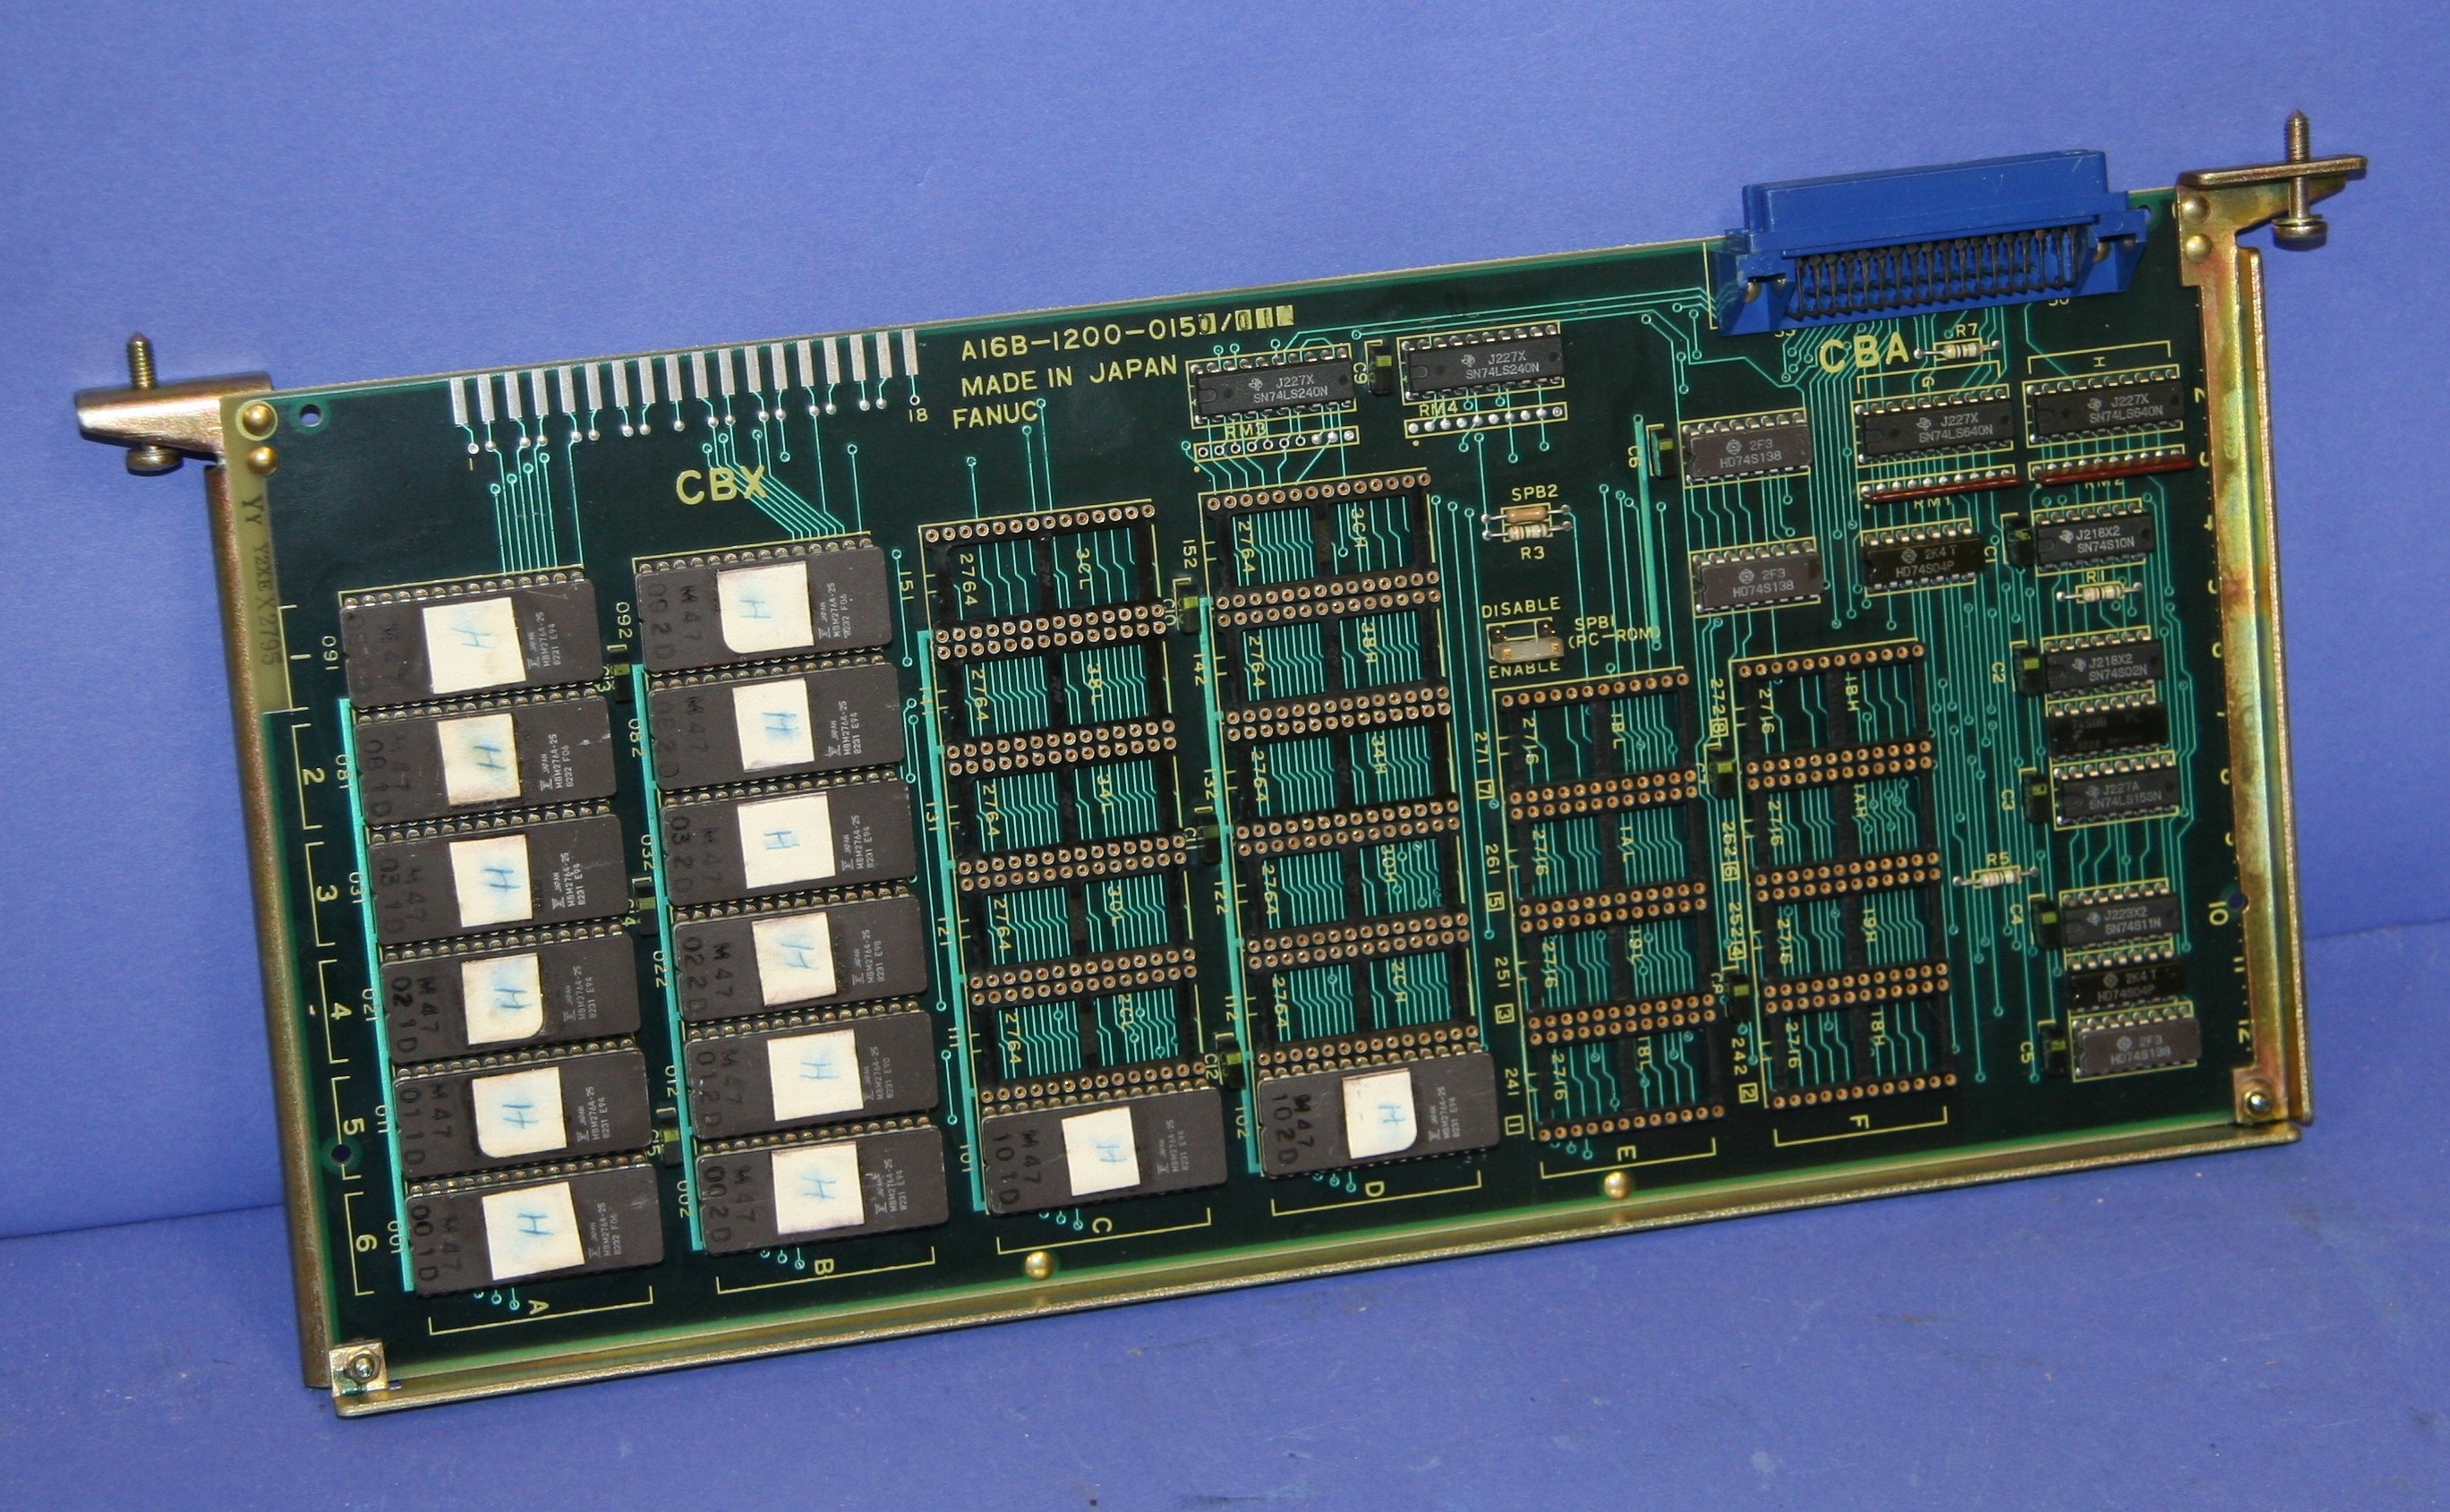 (1) Used Fanuc A16B-1200-0150/01A RC Board with ROM 8937